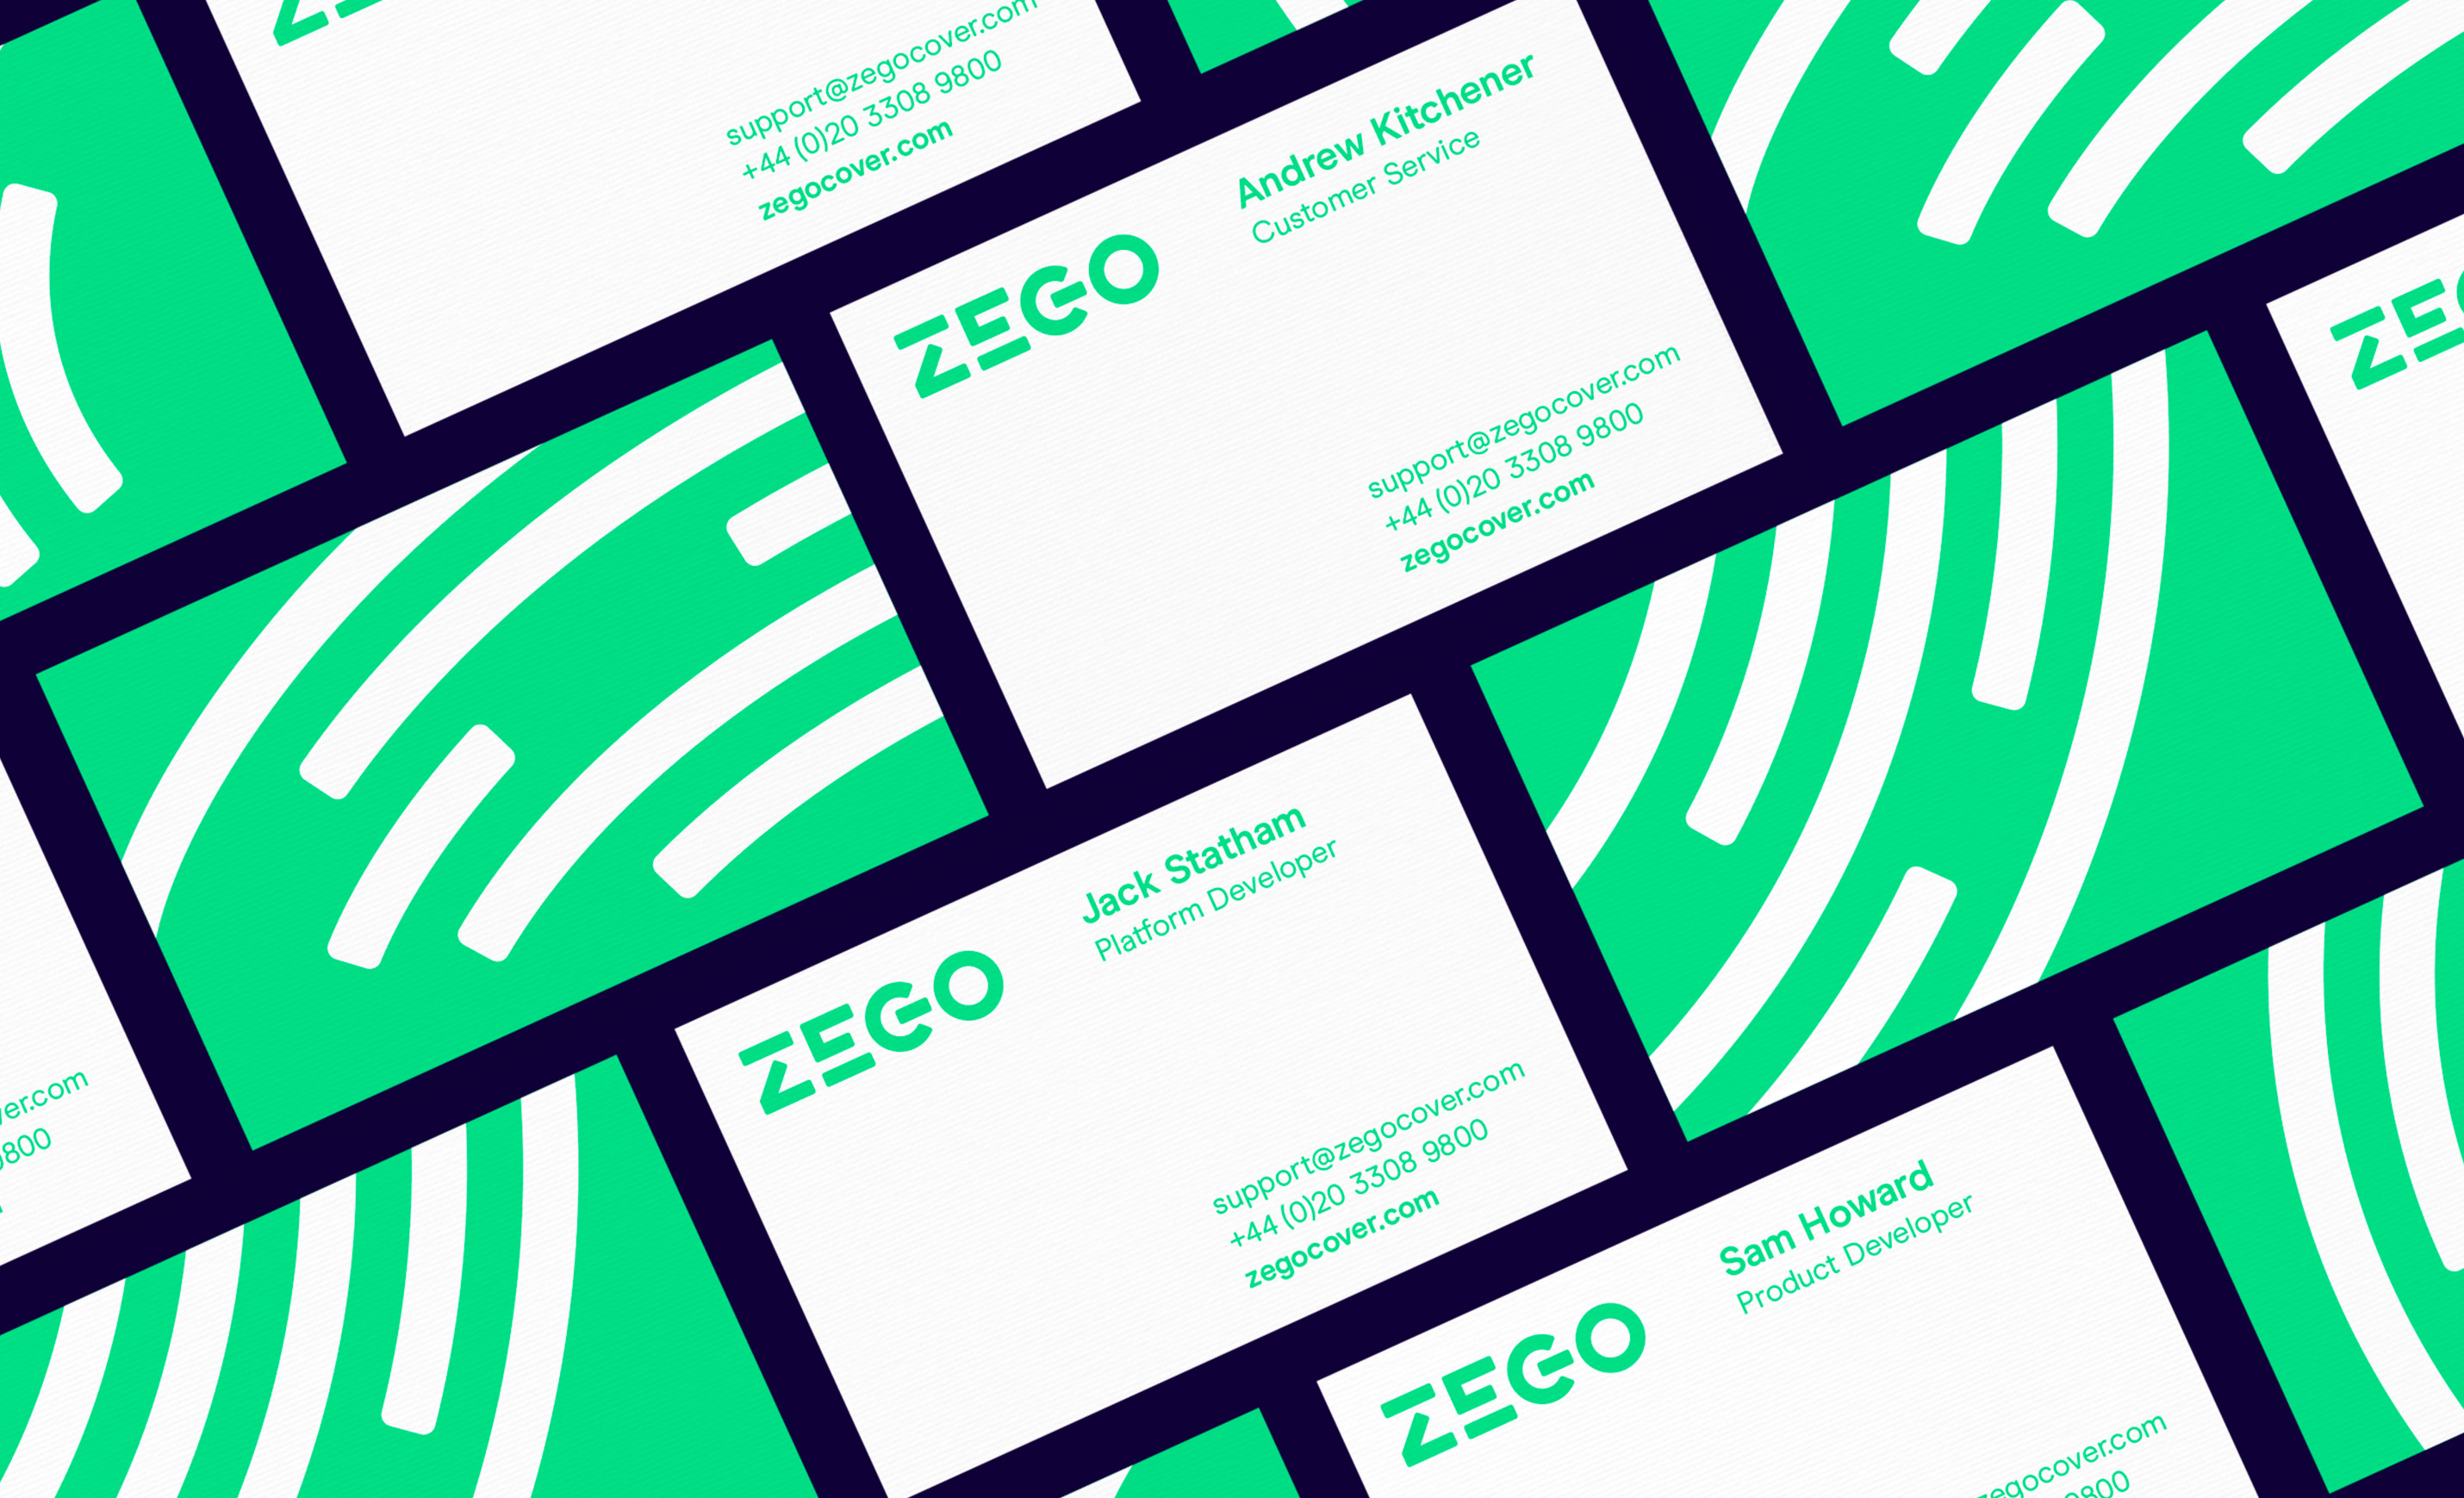 Zego-Business-Cards-04 – Marketing Communication News